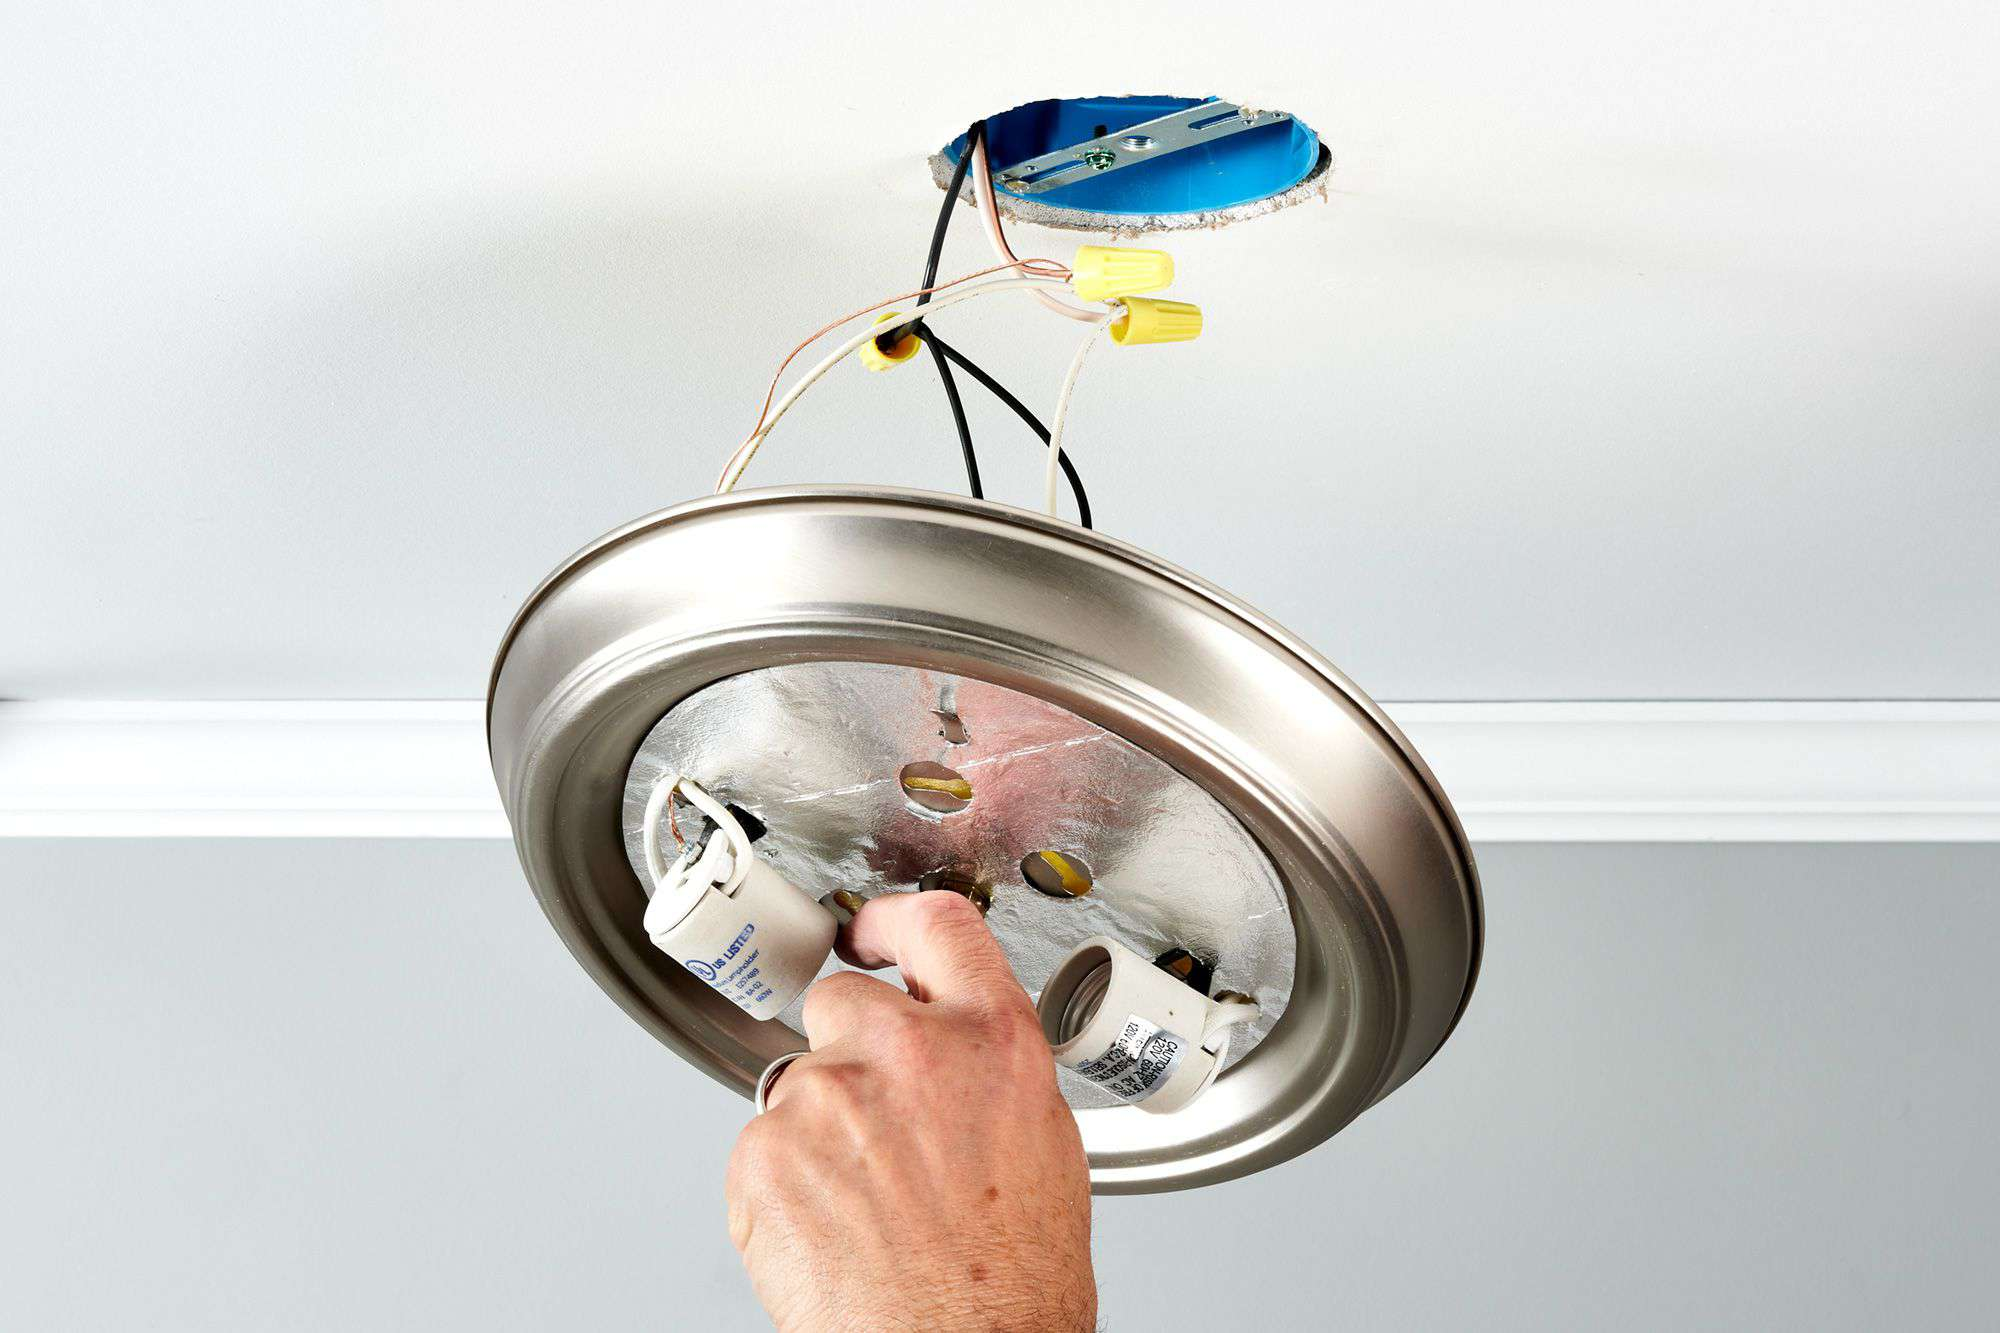 Removing a light fixture from the ceiling